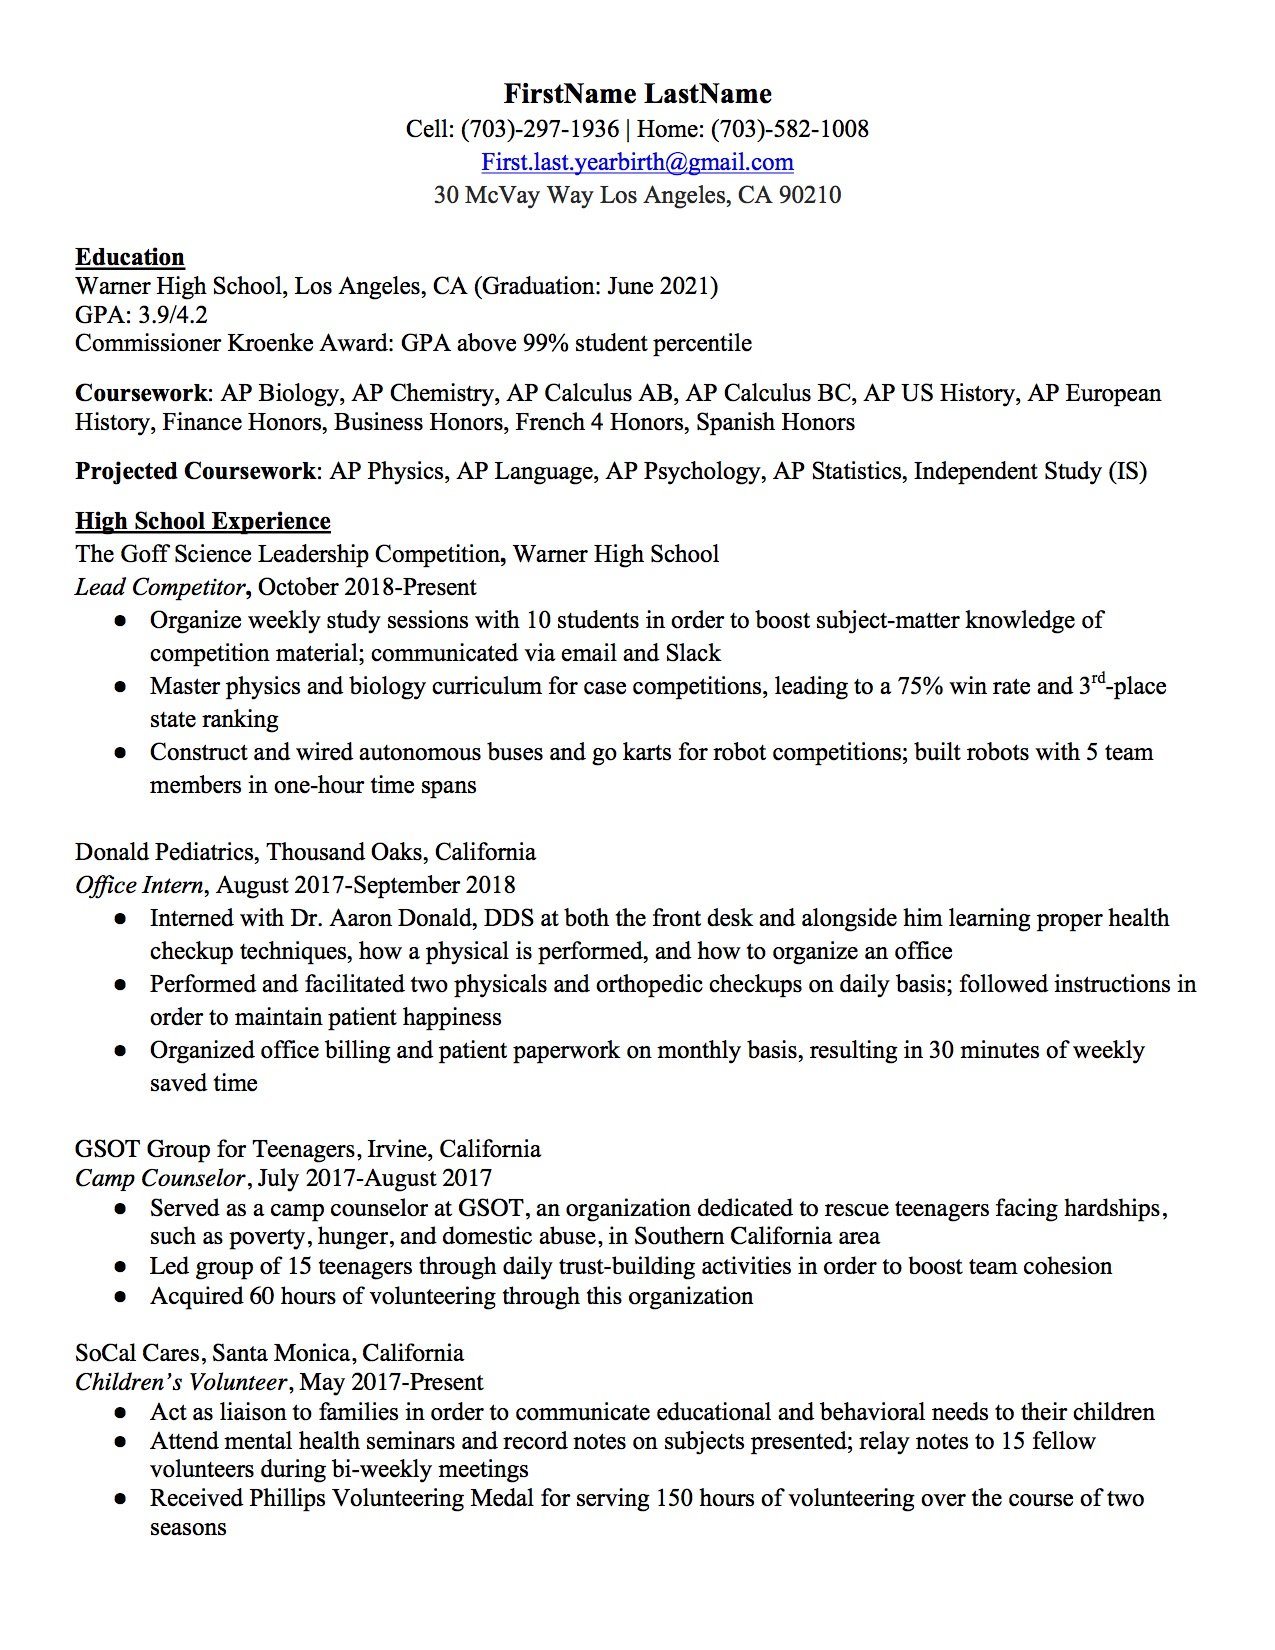 high school resume to write the best one templates included professional free for mac Resume Professional High School Resume